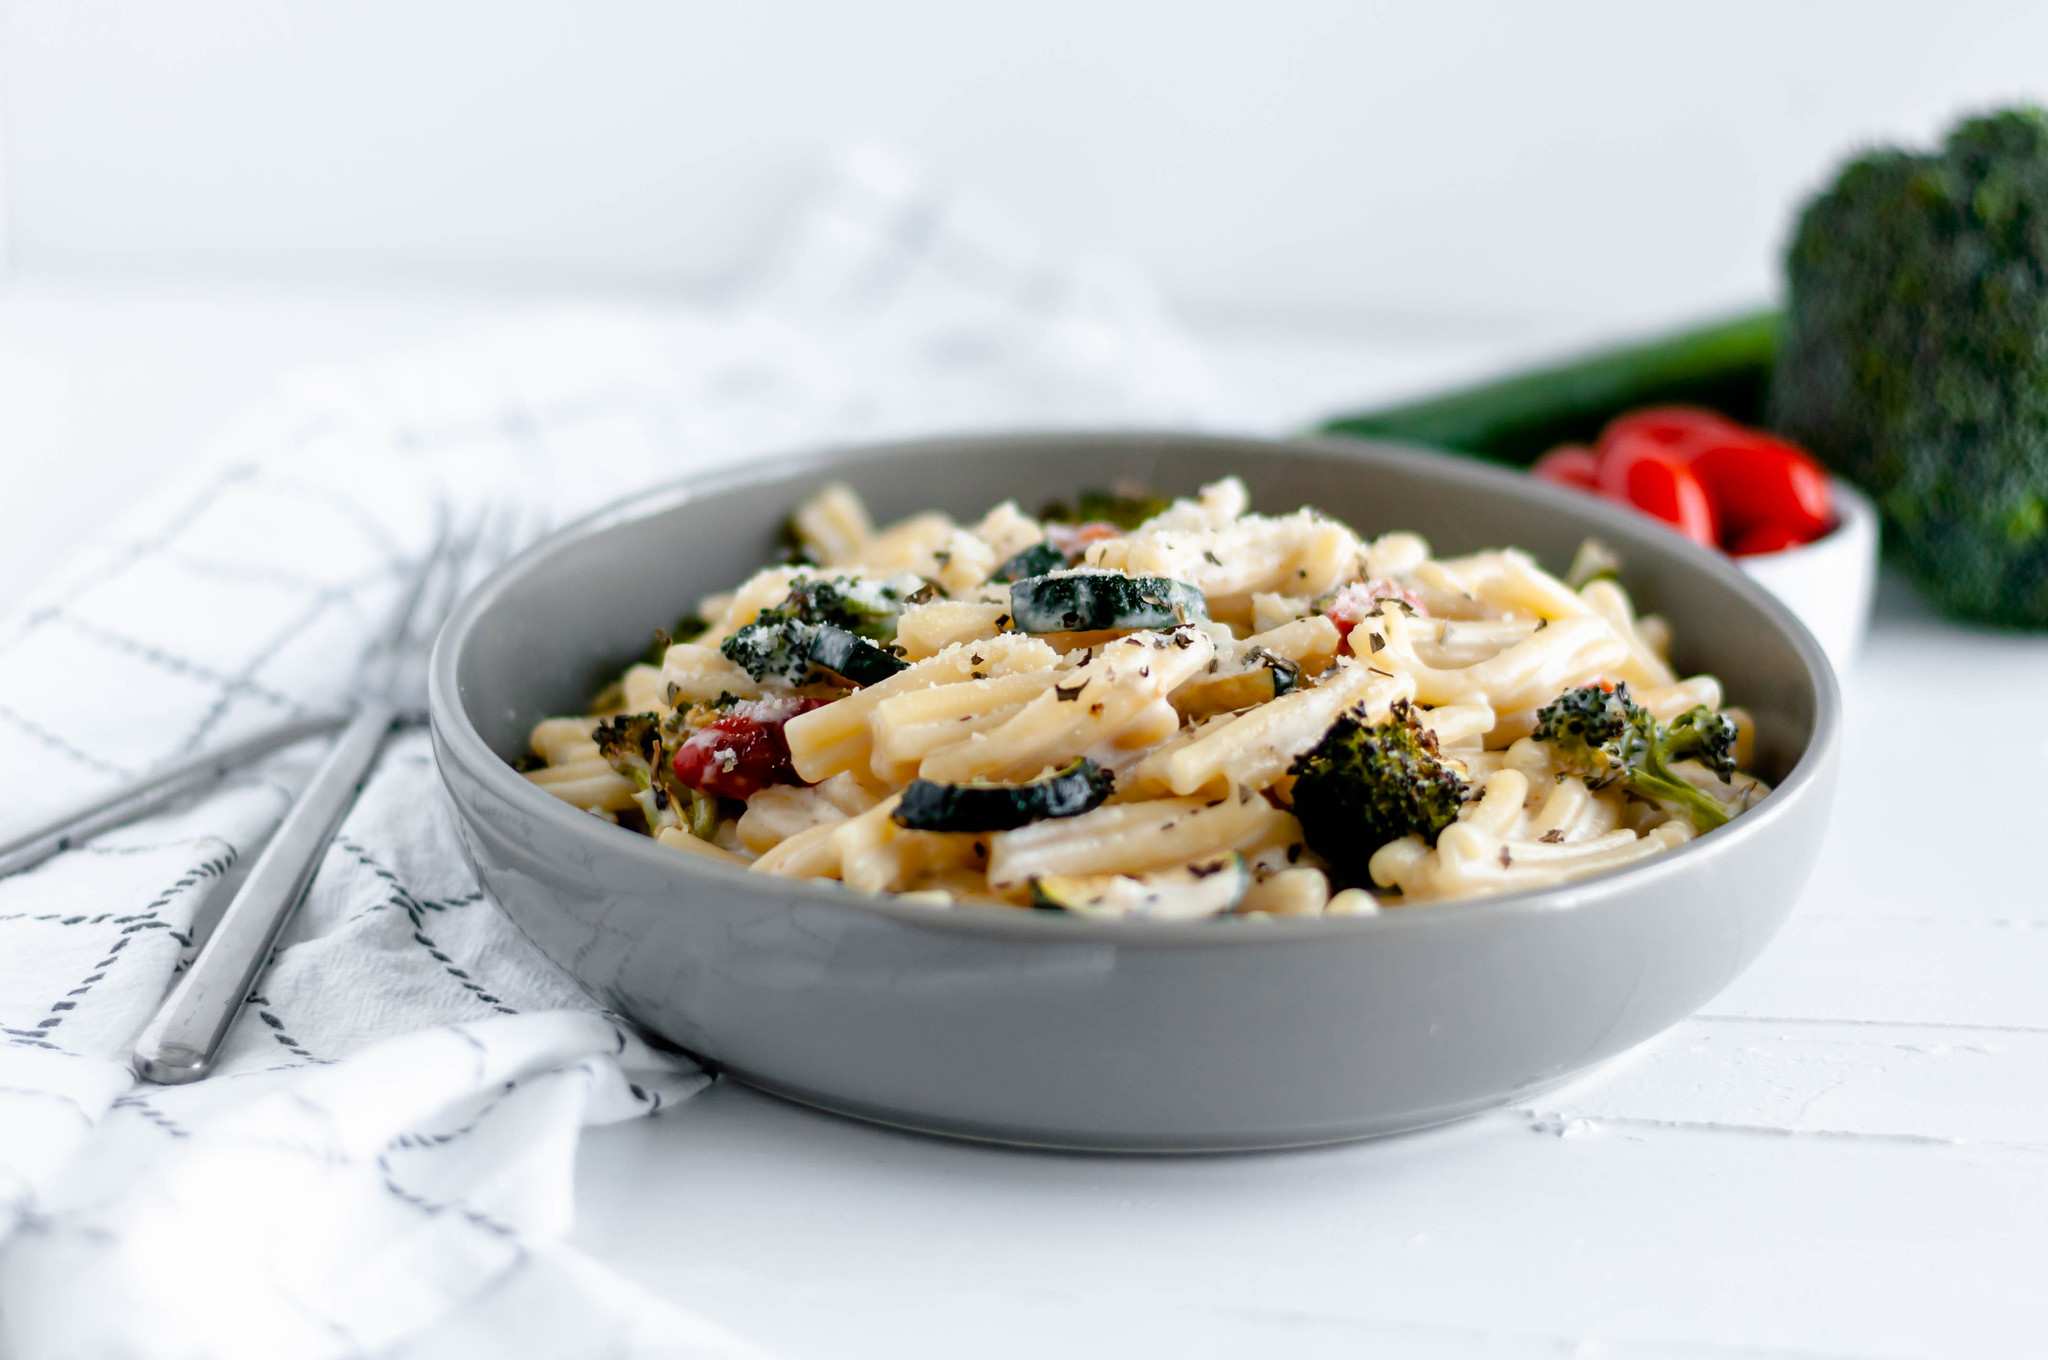 This Creamy Roasted Vegetable Pasta is a fast dinner option packed with flavor. Cheesy, creamy sauce, perfectly cooked pasta and flavorful roasted veggies.